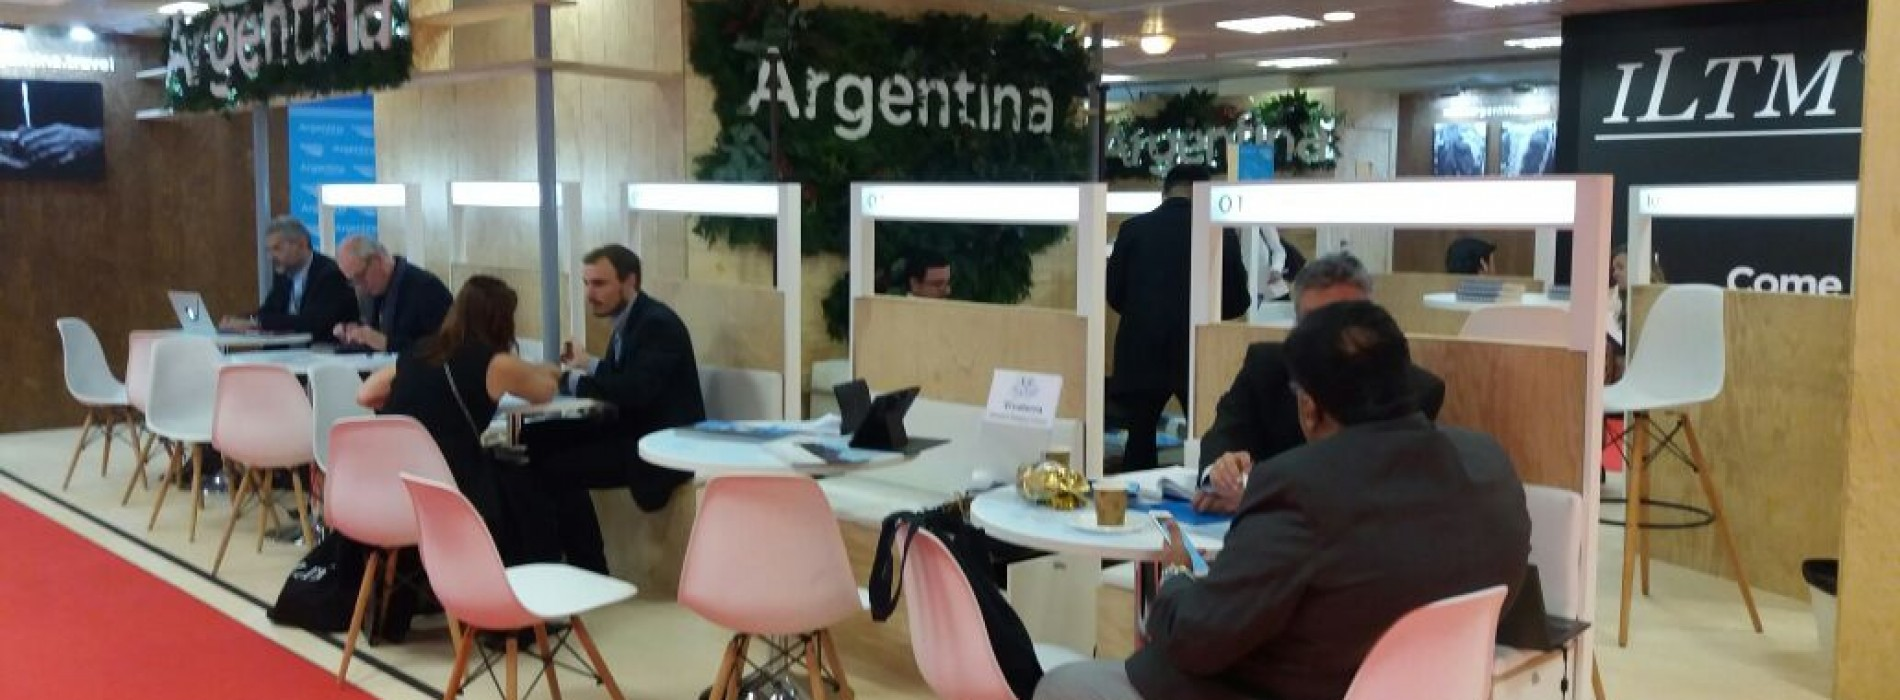 Argentina submitted its offer luxury in France